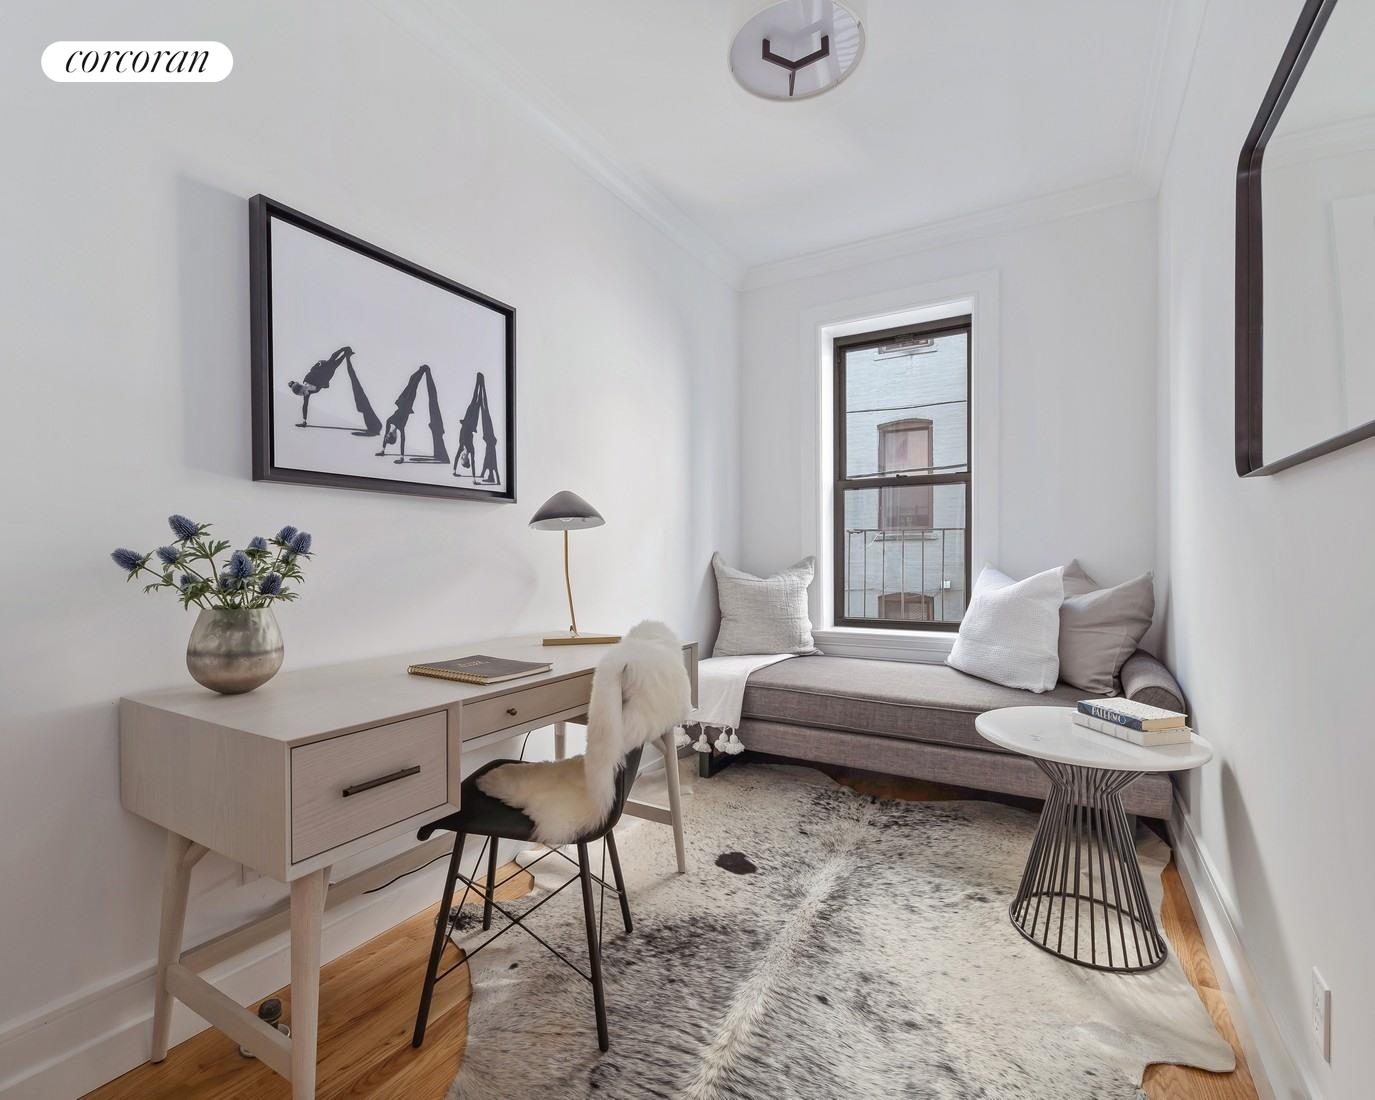 24-51 38th Street, A4, Living Room